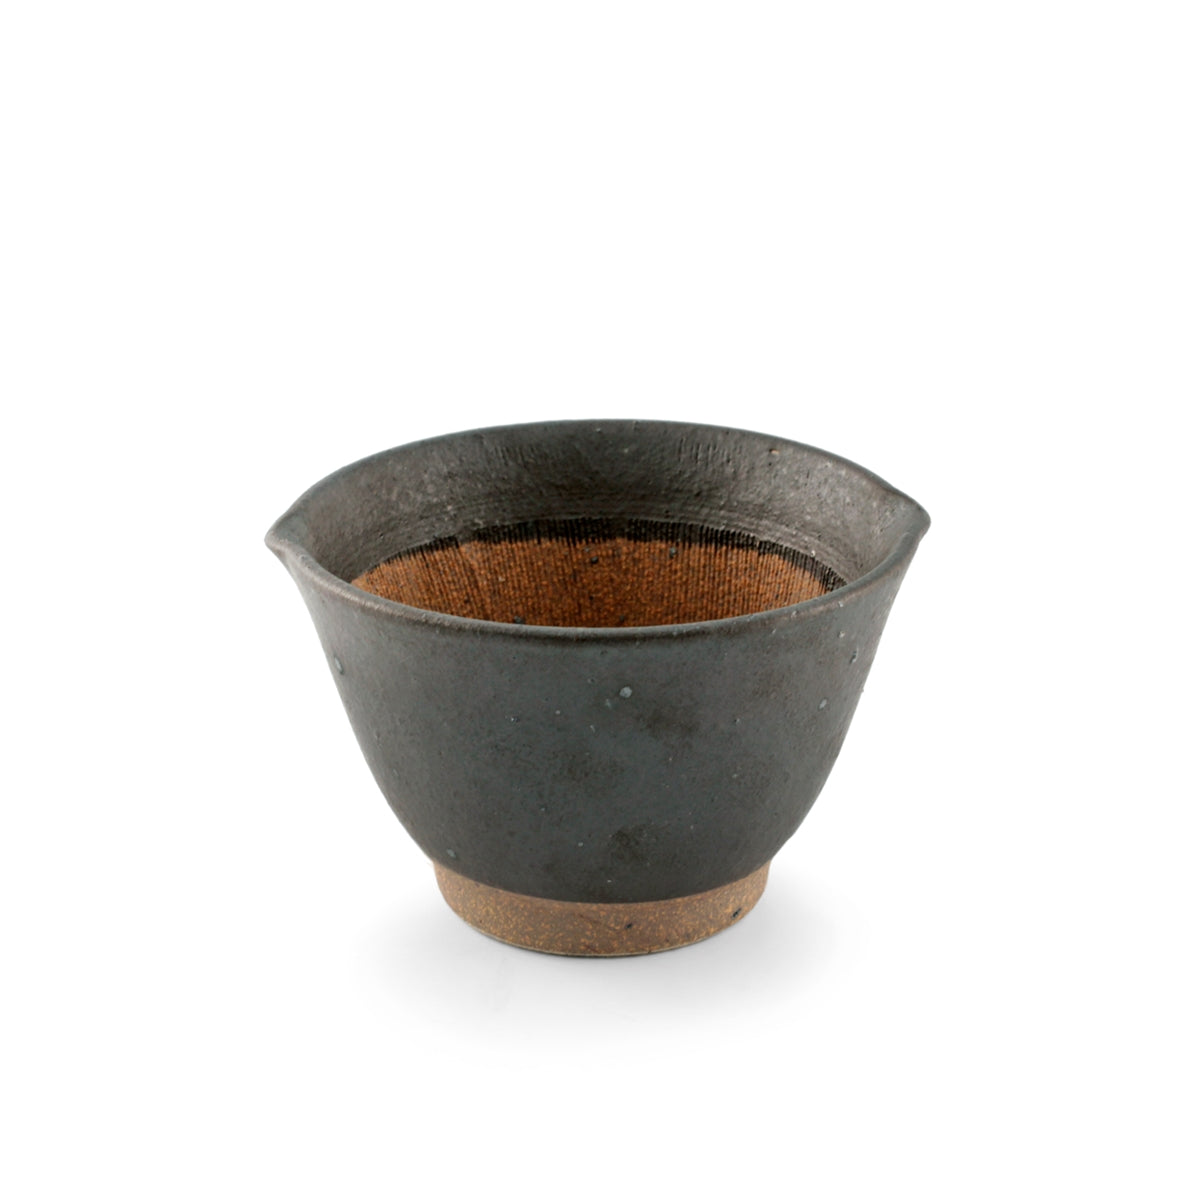 "Black Double Lipped Medium Bowl with Japanese-style Mortar (Suribachi) 14.5 fl oz / 4.72"" dia"